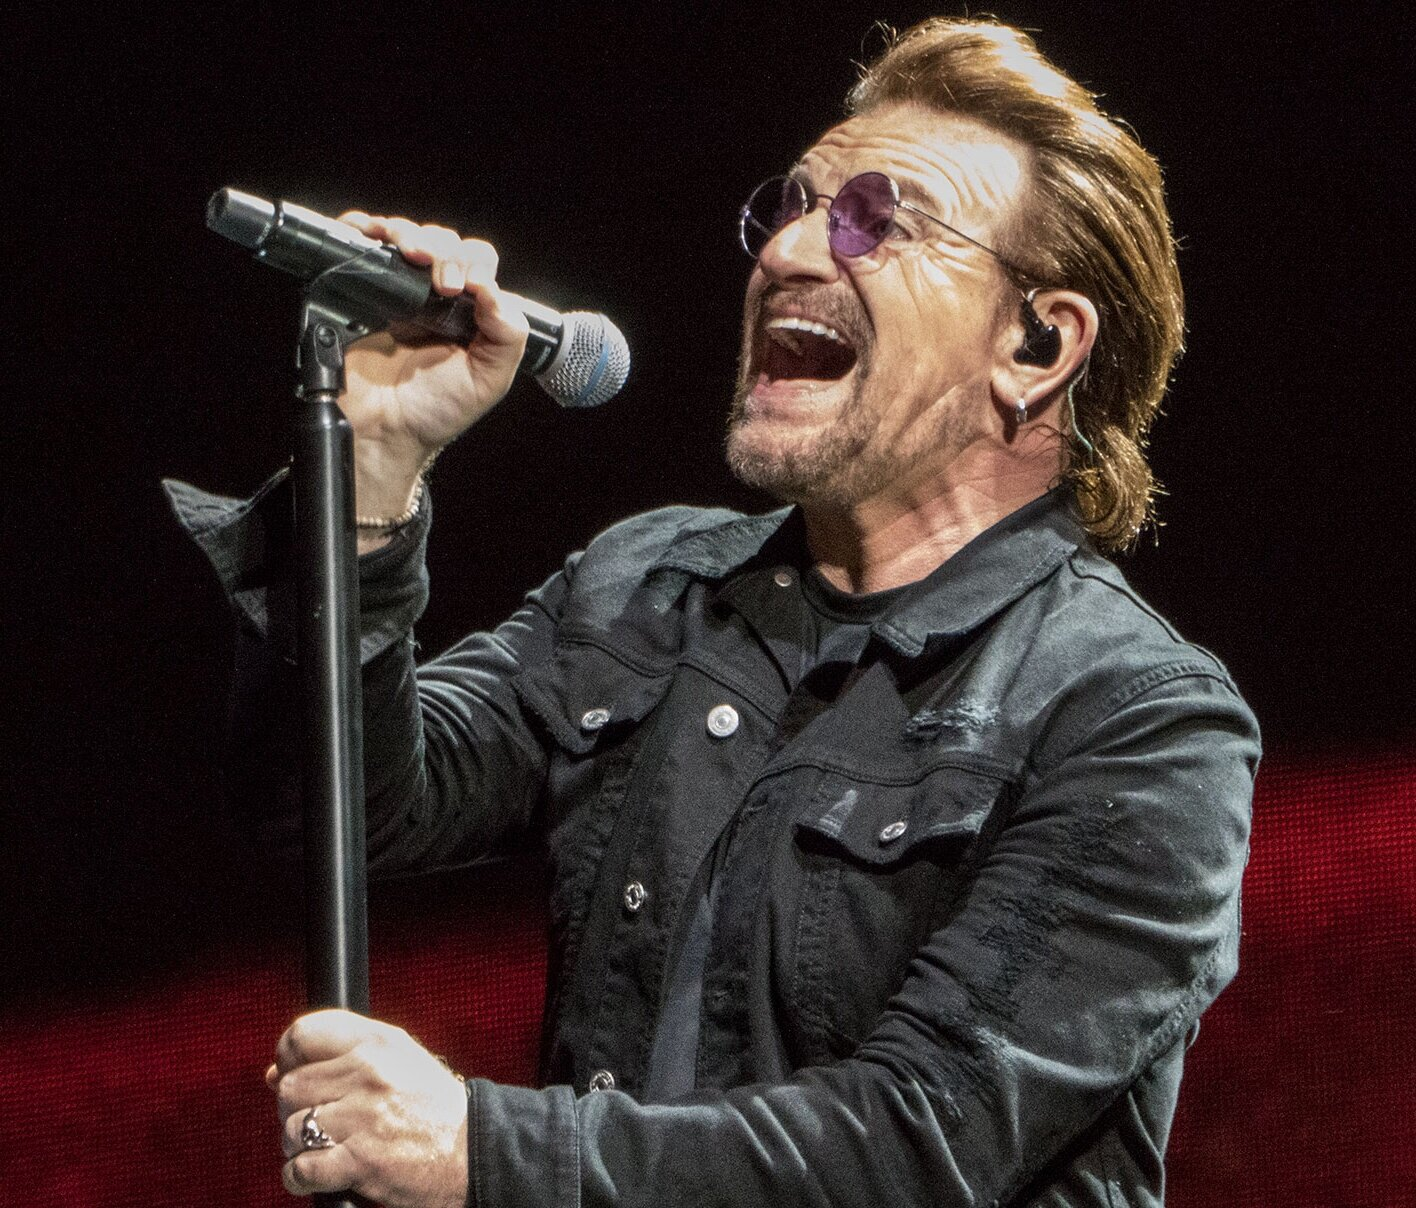 Dublin native Bono is as well-known for his political statements as he is for his four-decade music career.